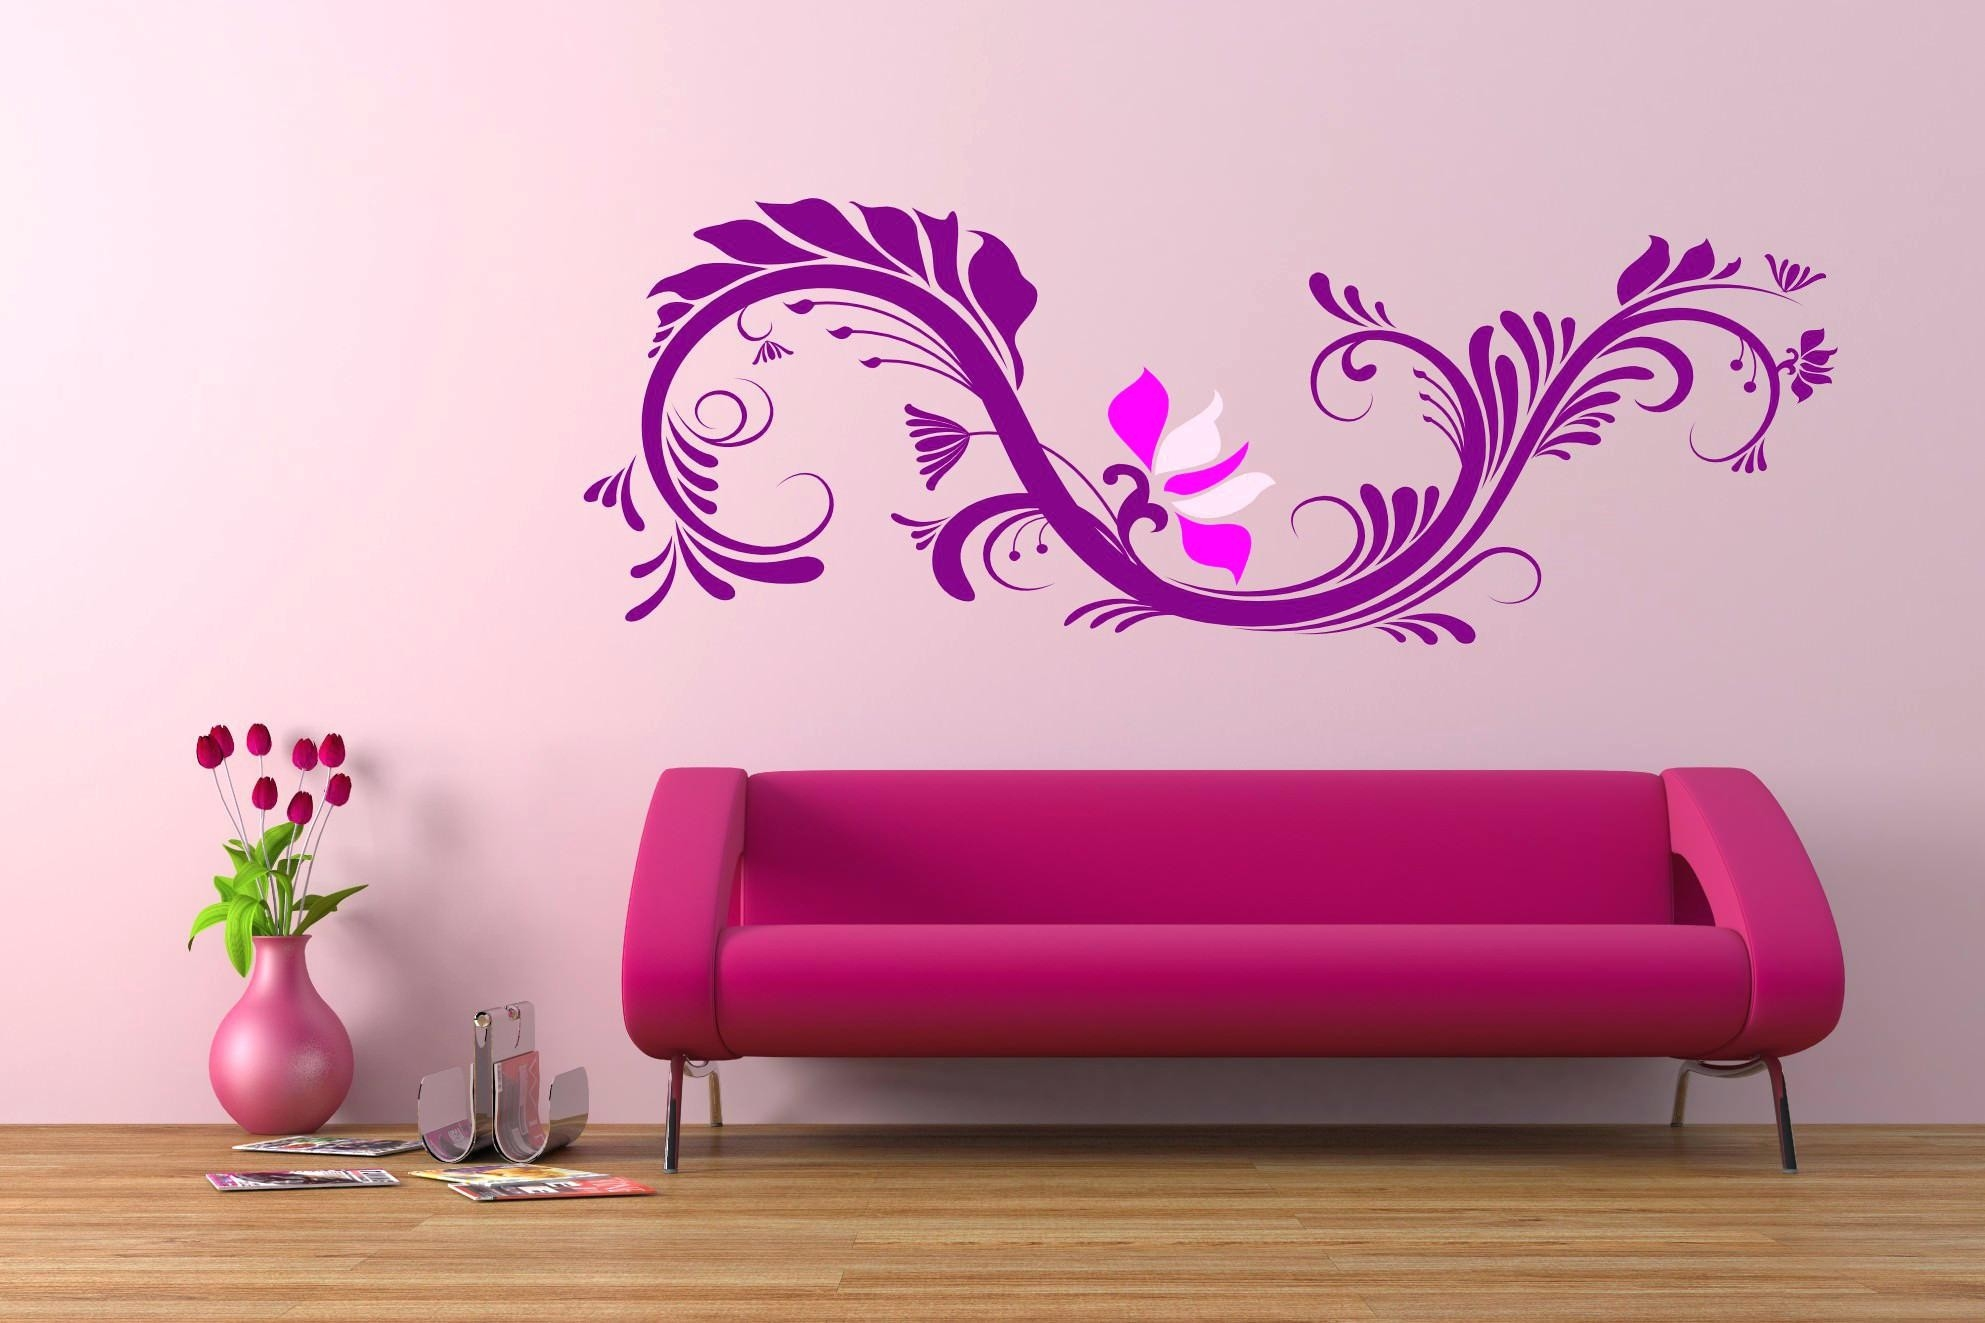 Wall Paint Designs For Living Room Awesome Creative Wall Painting with Creative Wall Painting Ideas For Living Room 30073